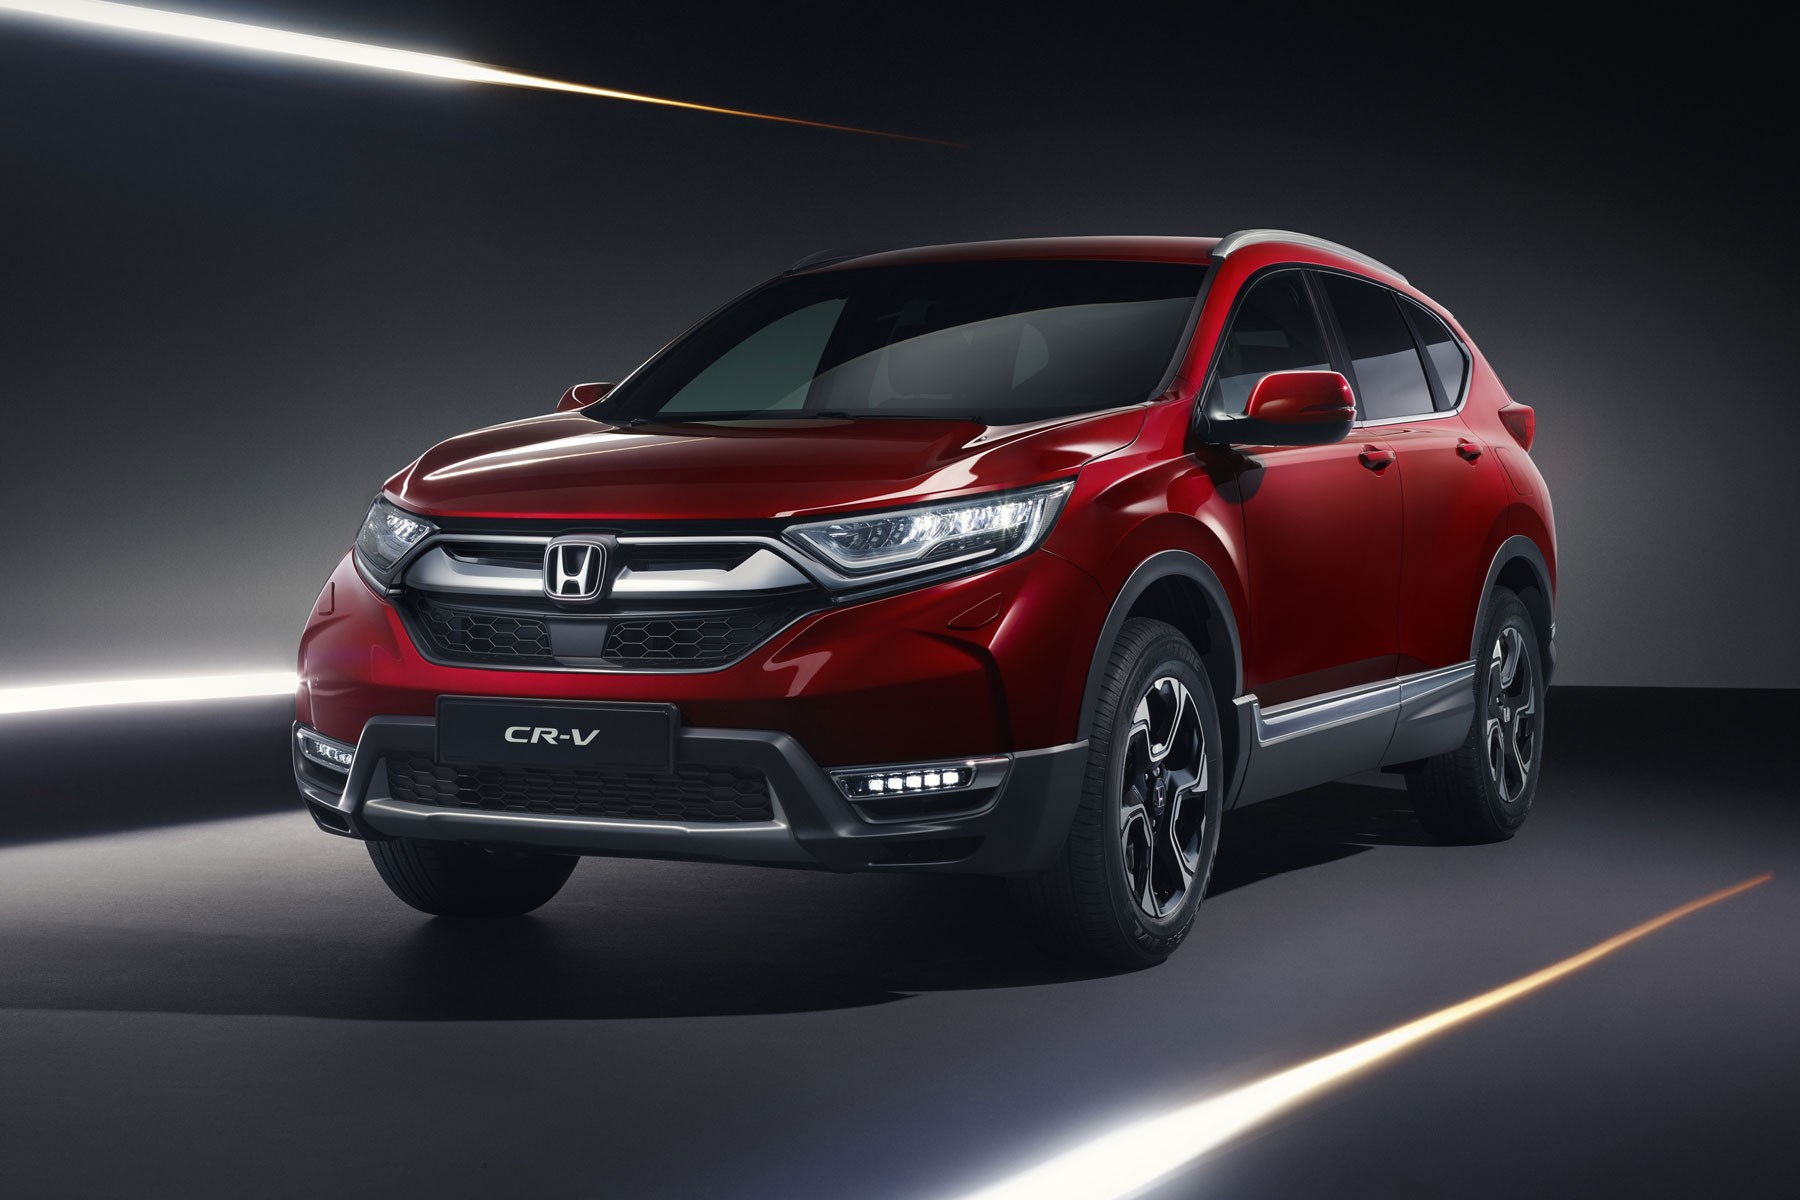 honda cr v 2018 news info pics spec hybrid car. Black Bedroom Furniture Sets. Home Design Ideas